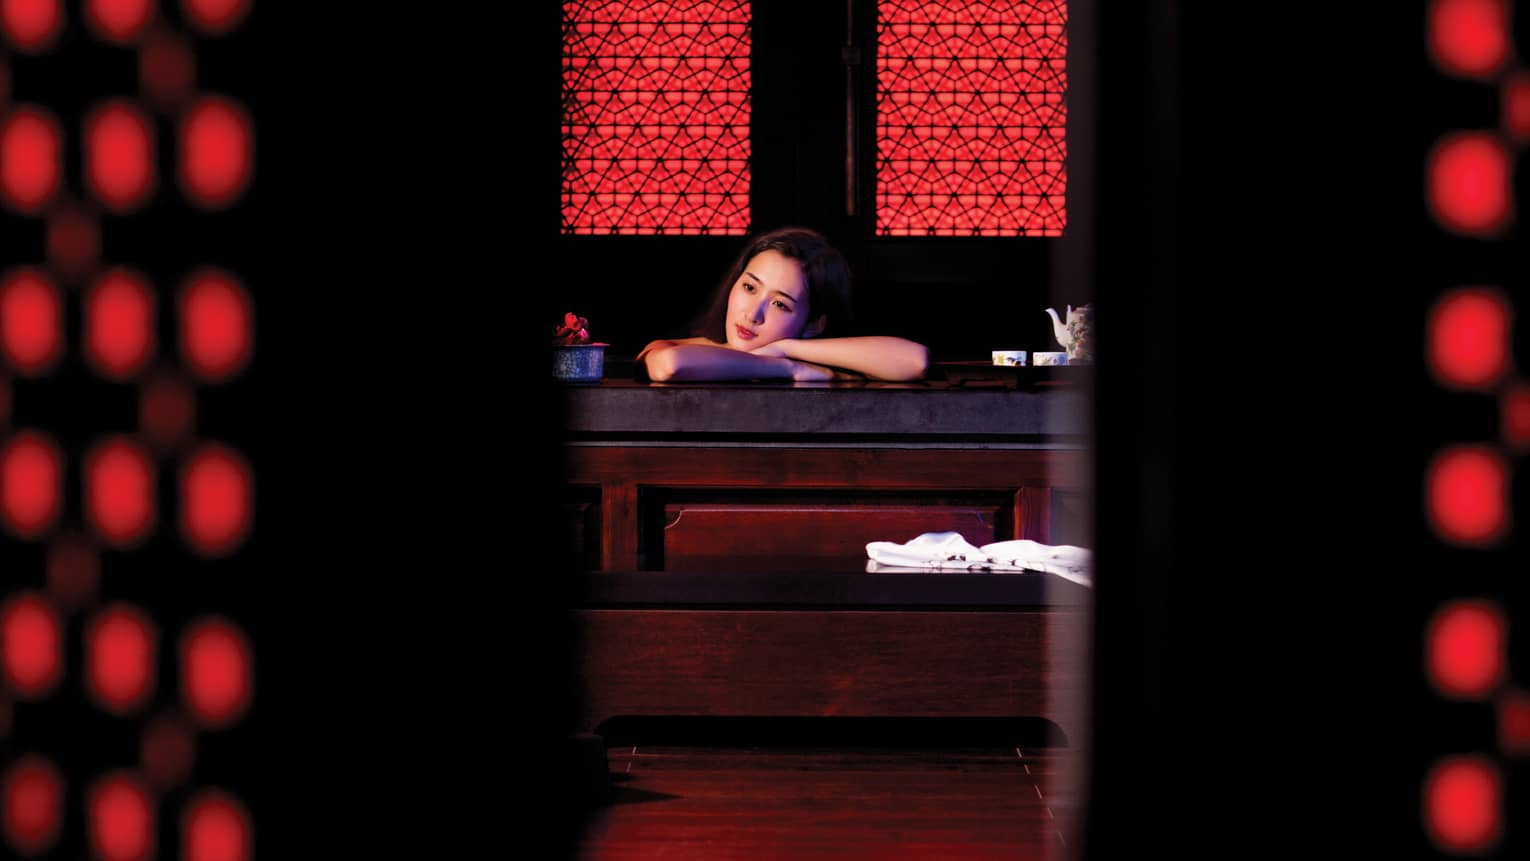 Woman rests head on crossed arms on table in dark red-and-black spa